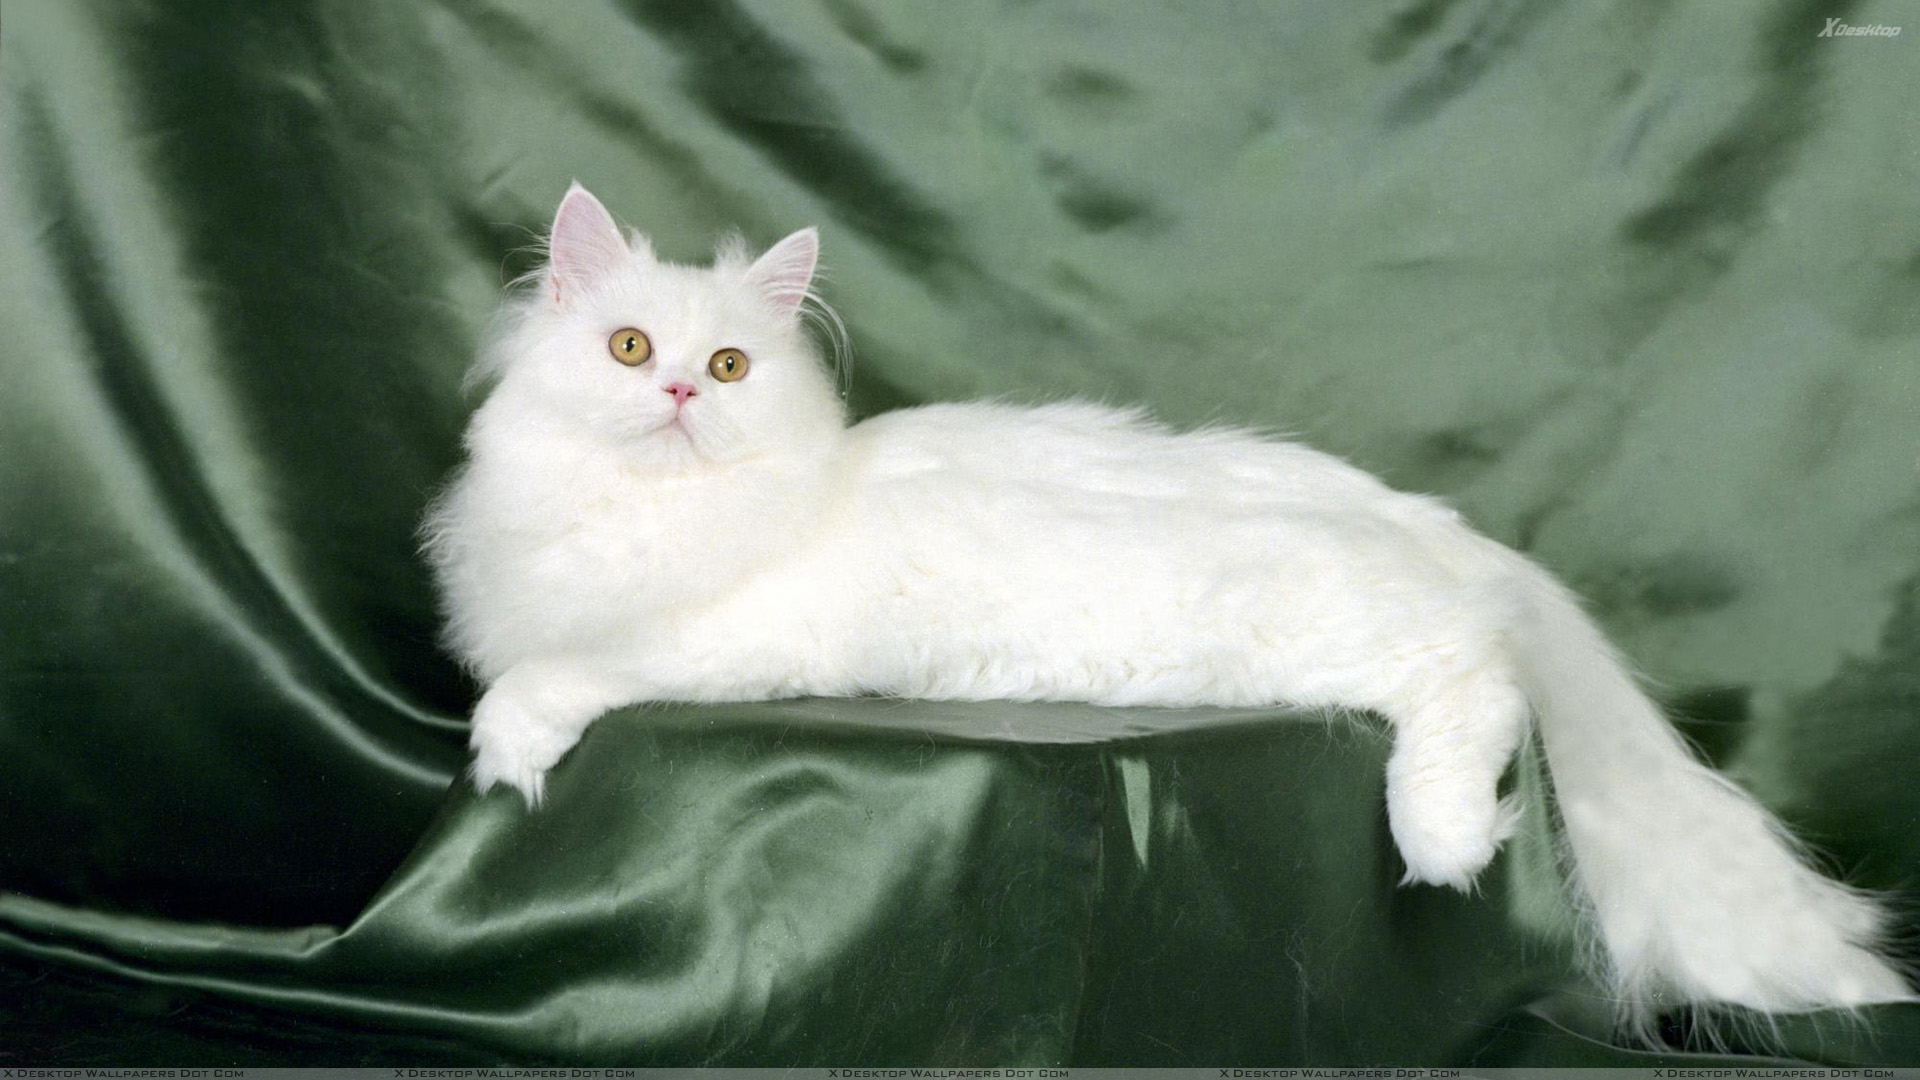 White Sweet Cat Pose On Green Background Wallpaper